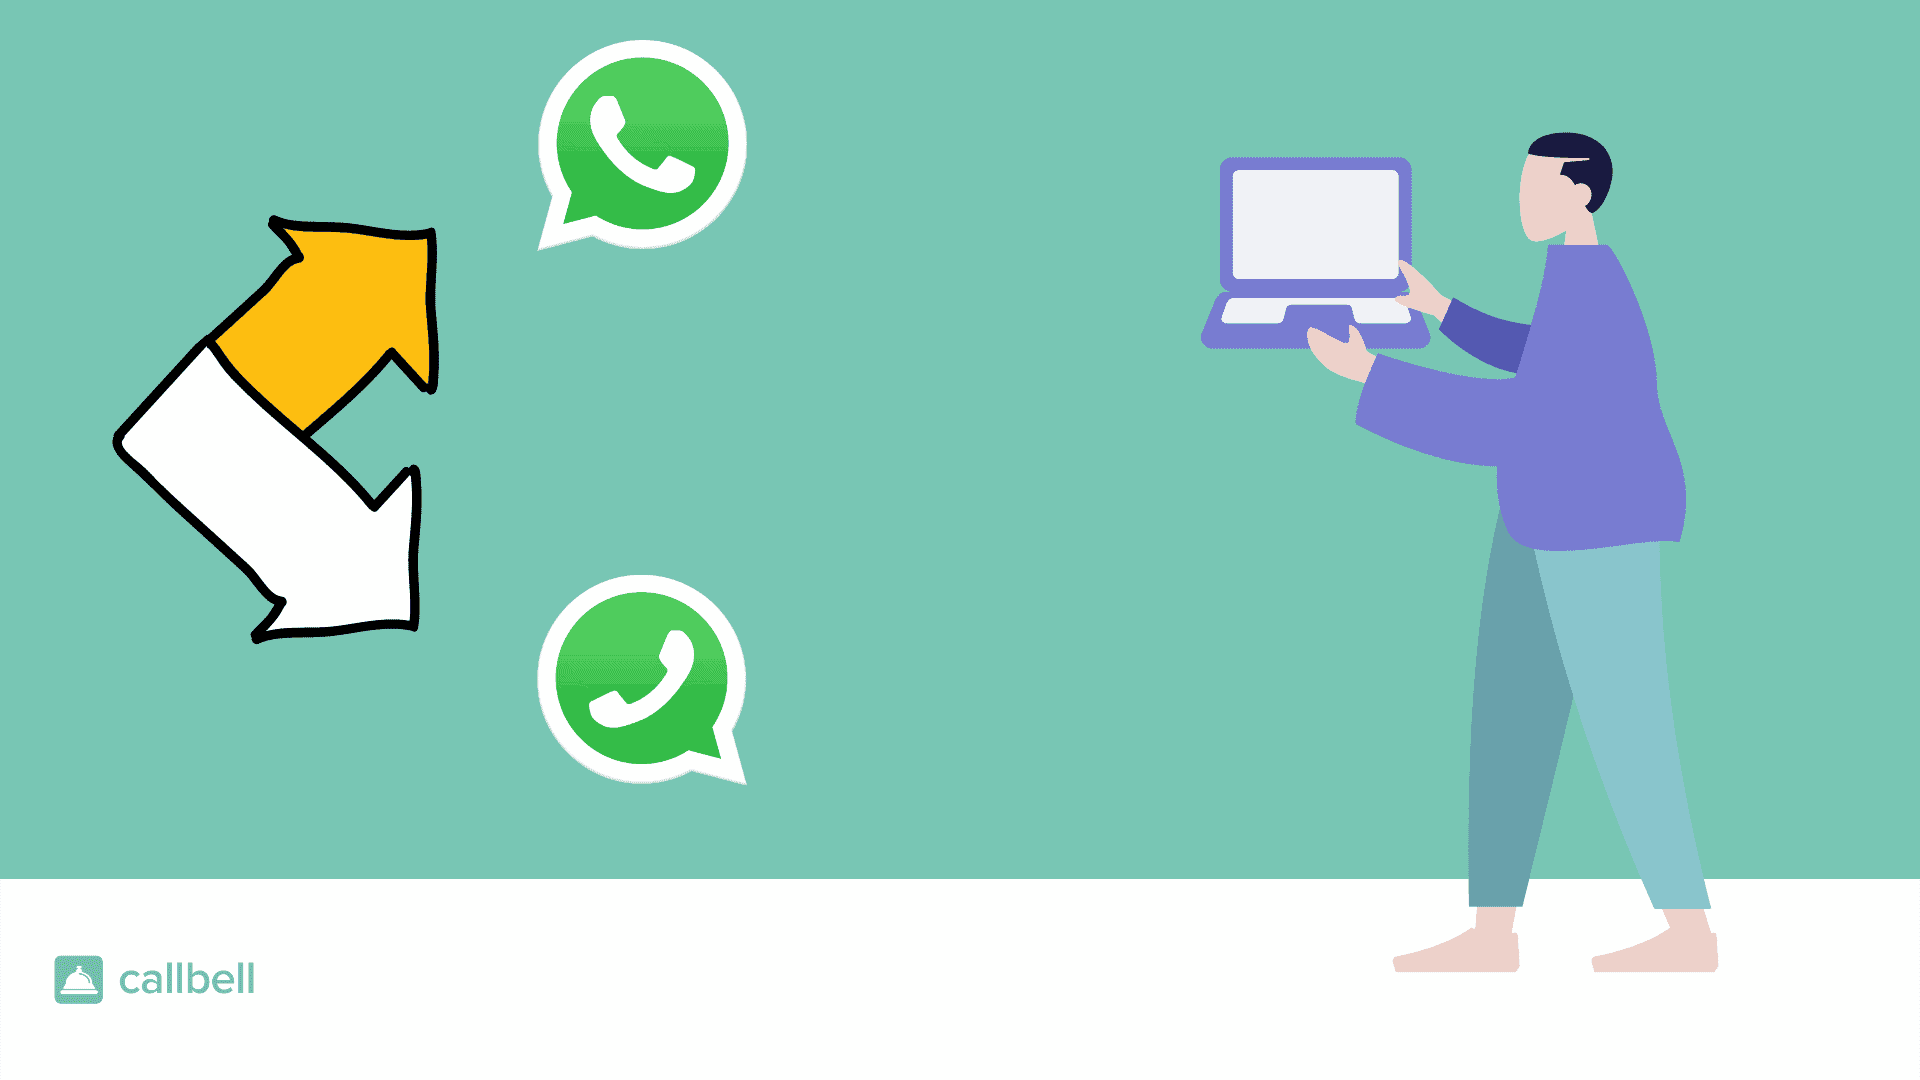 What are the differences between WhatsApp web on 4 screens and WhatsApp Multi Agent?